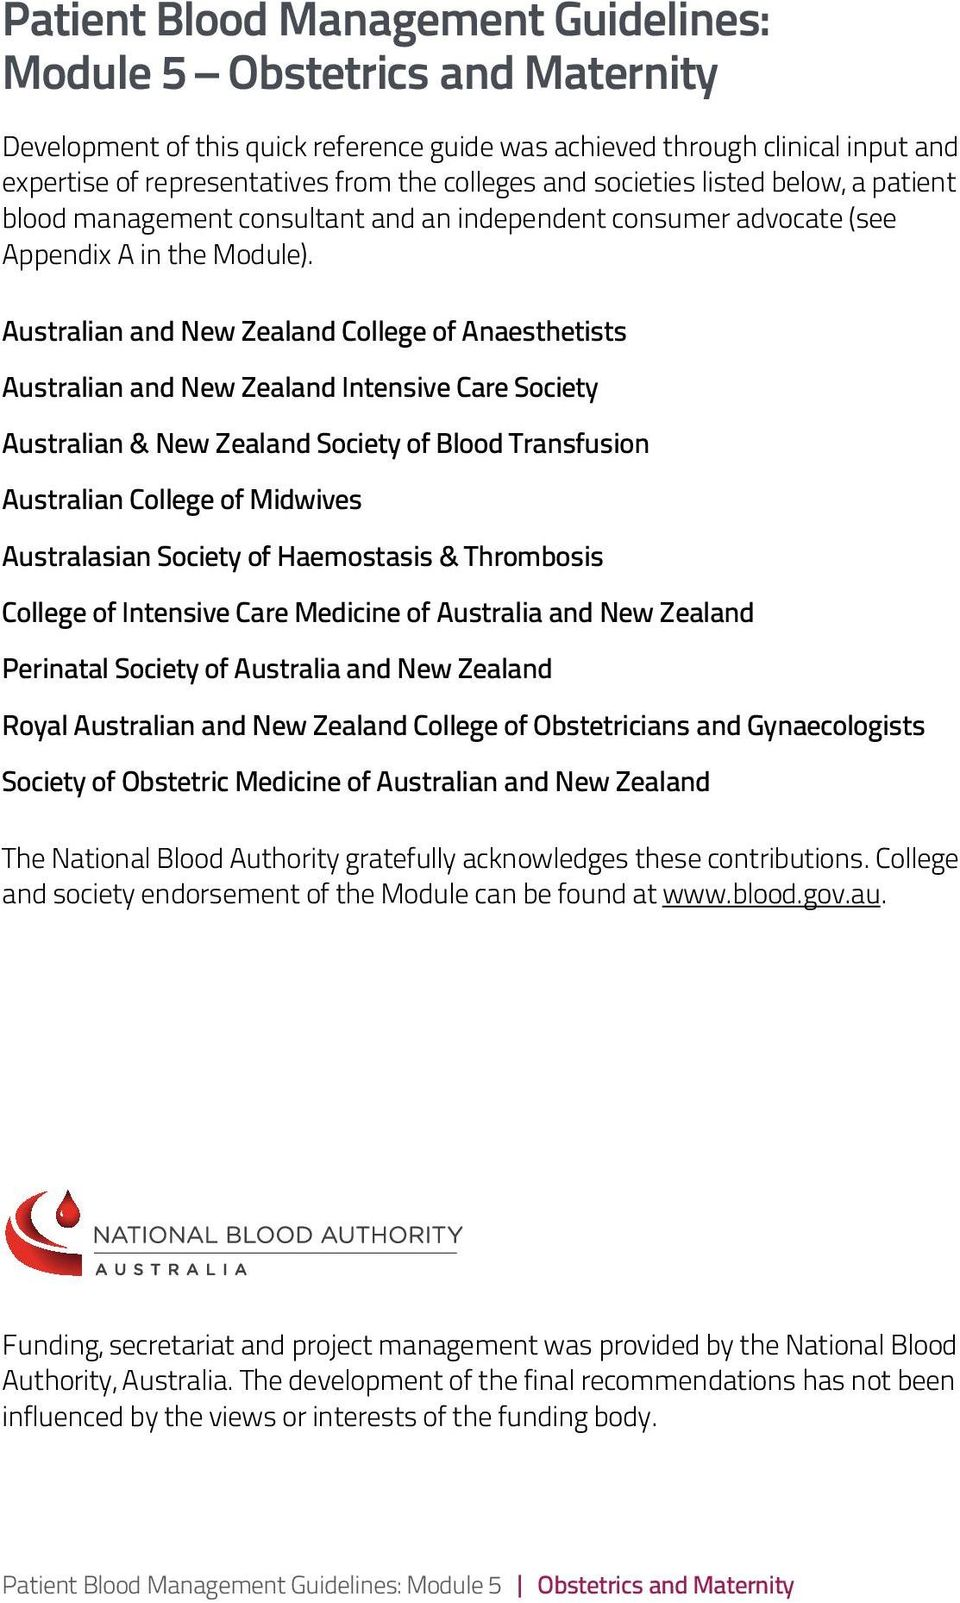 Australian and New Zealand College of Anaesthetists Australian and New Zealand Intensive Care Society Australian & New Zealand Society of Blood Transfusion Australian College of Midwives Australasian